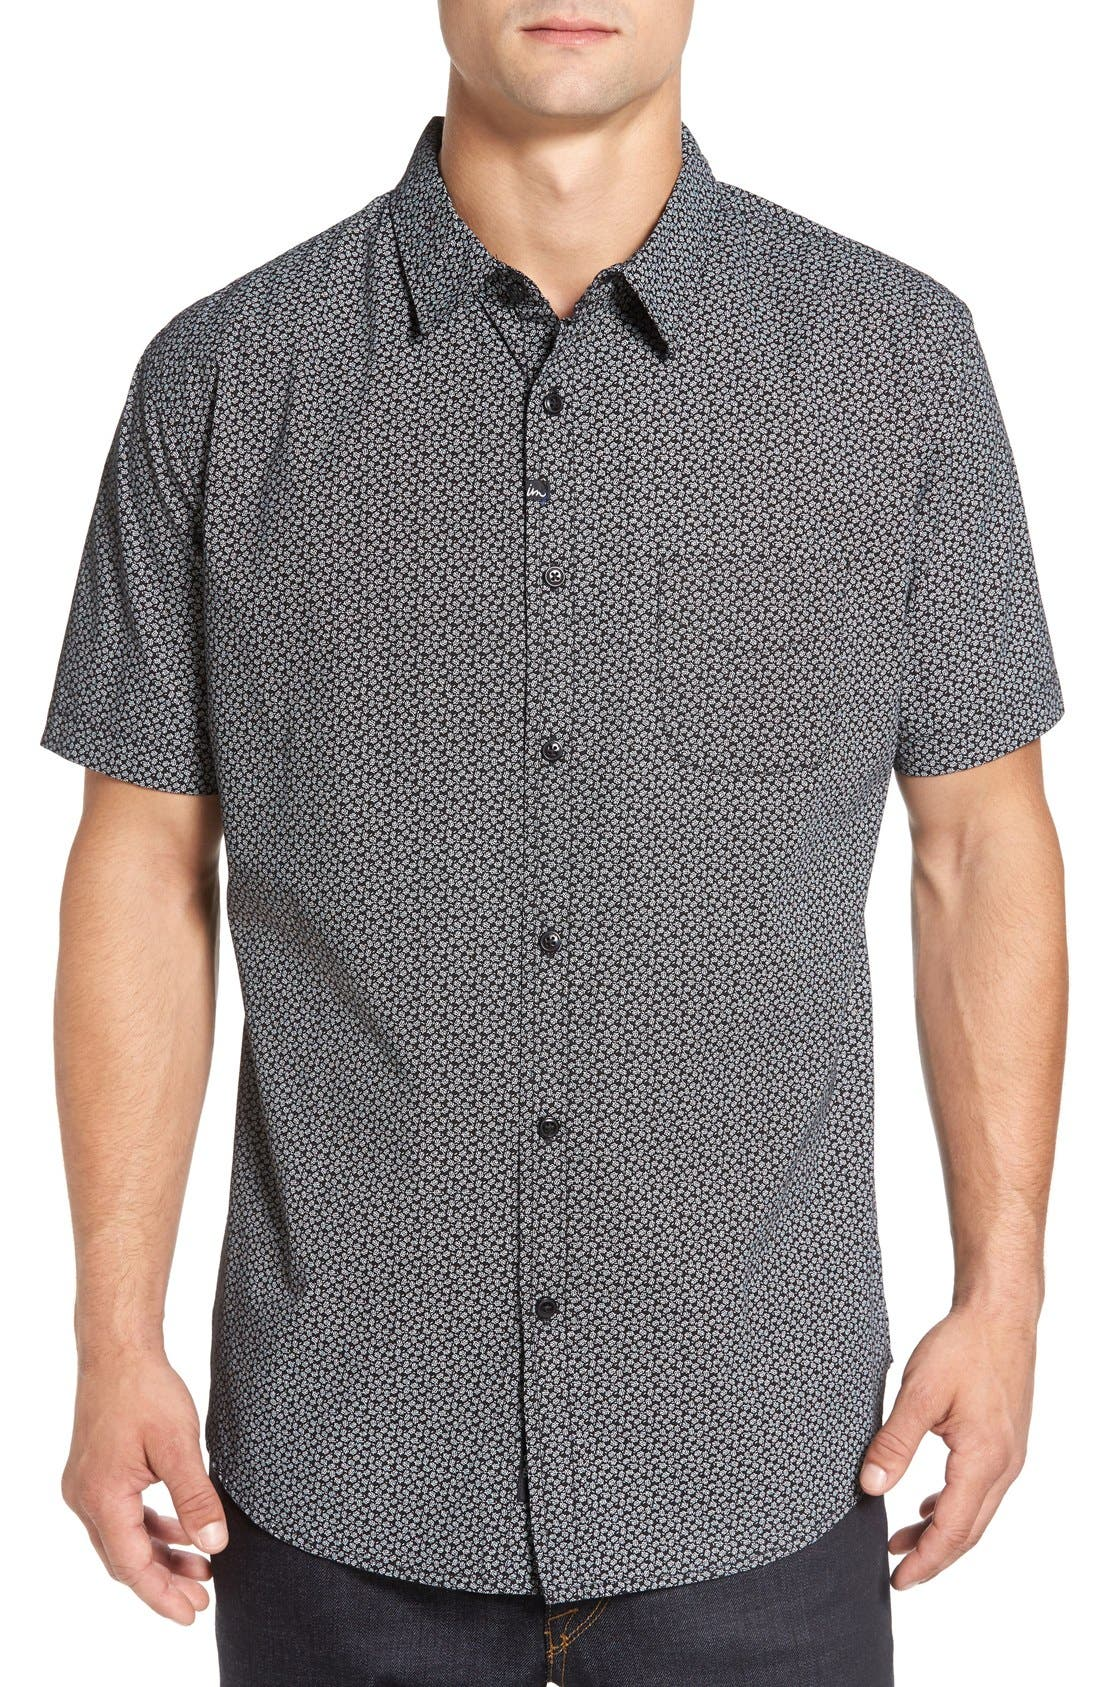 Imperial Motion 'Branch' Slim Fit Print Short Sleeve Woven Shirt